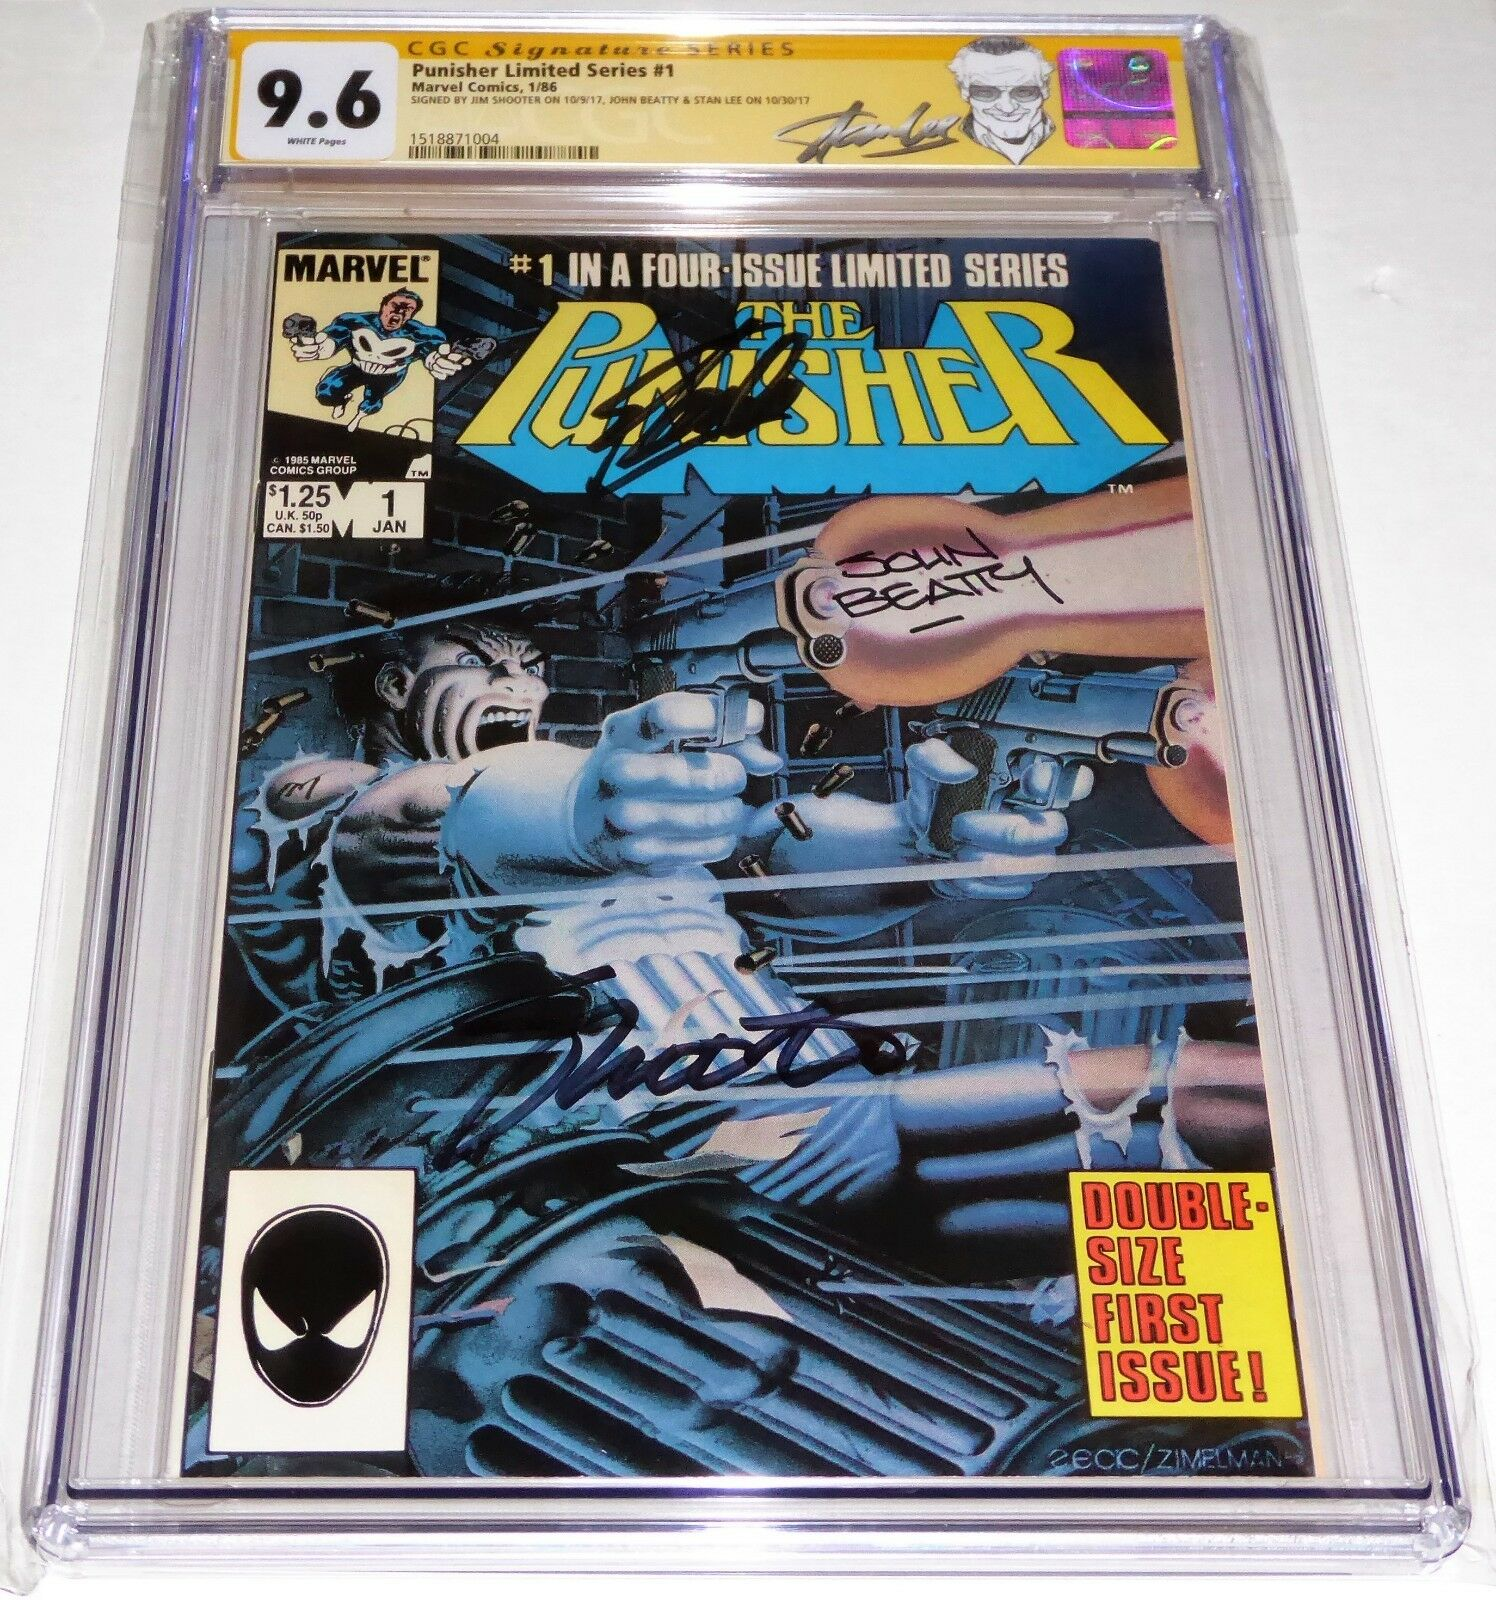 Punisher Limited Series #1 3x CGC SS Signature Autograph STAN LEE SHOOTER BEATTY